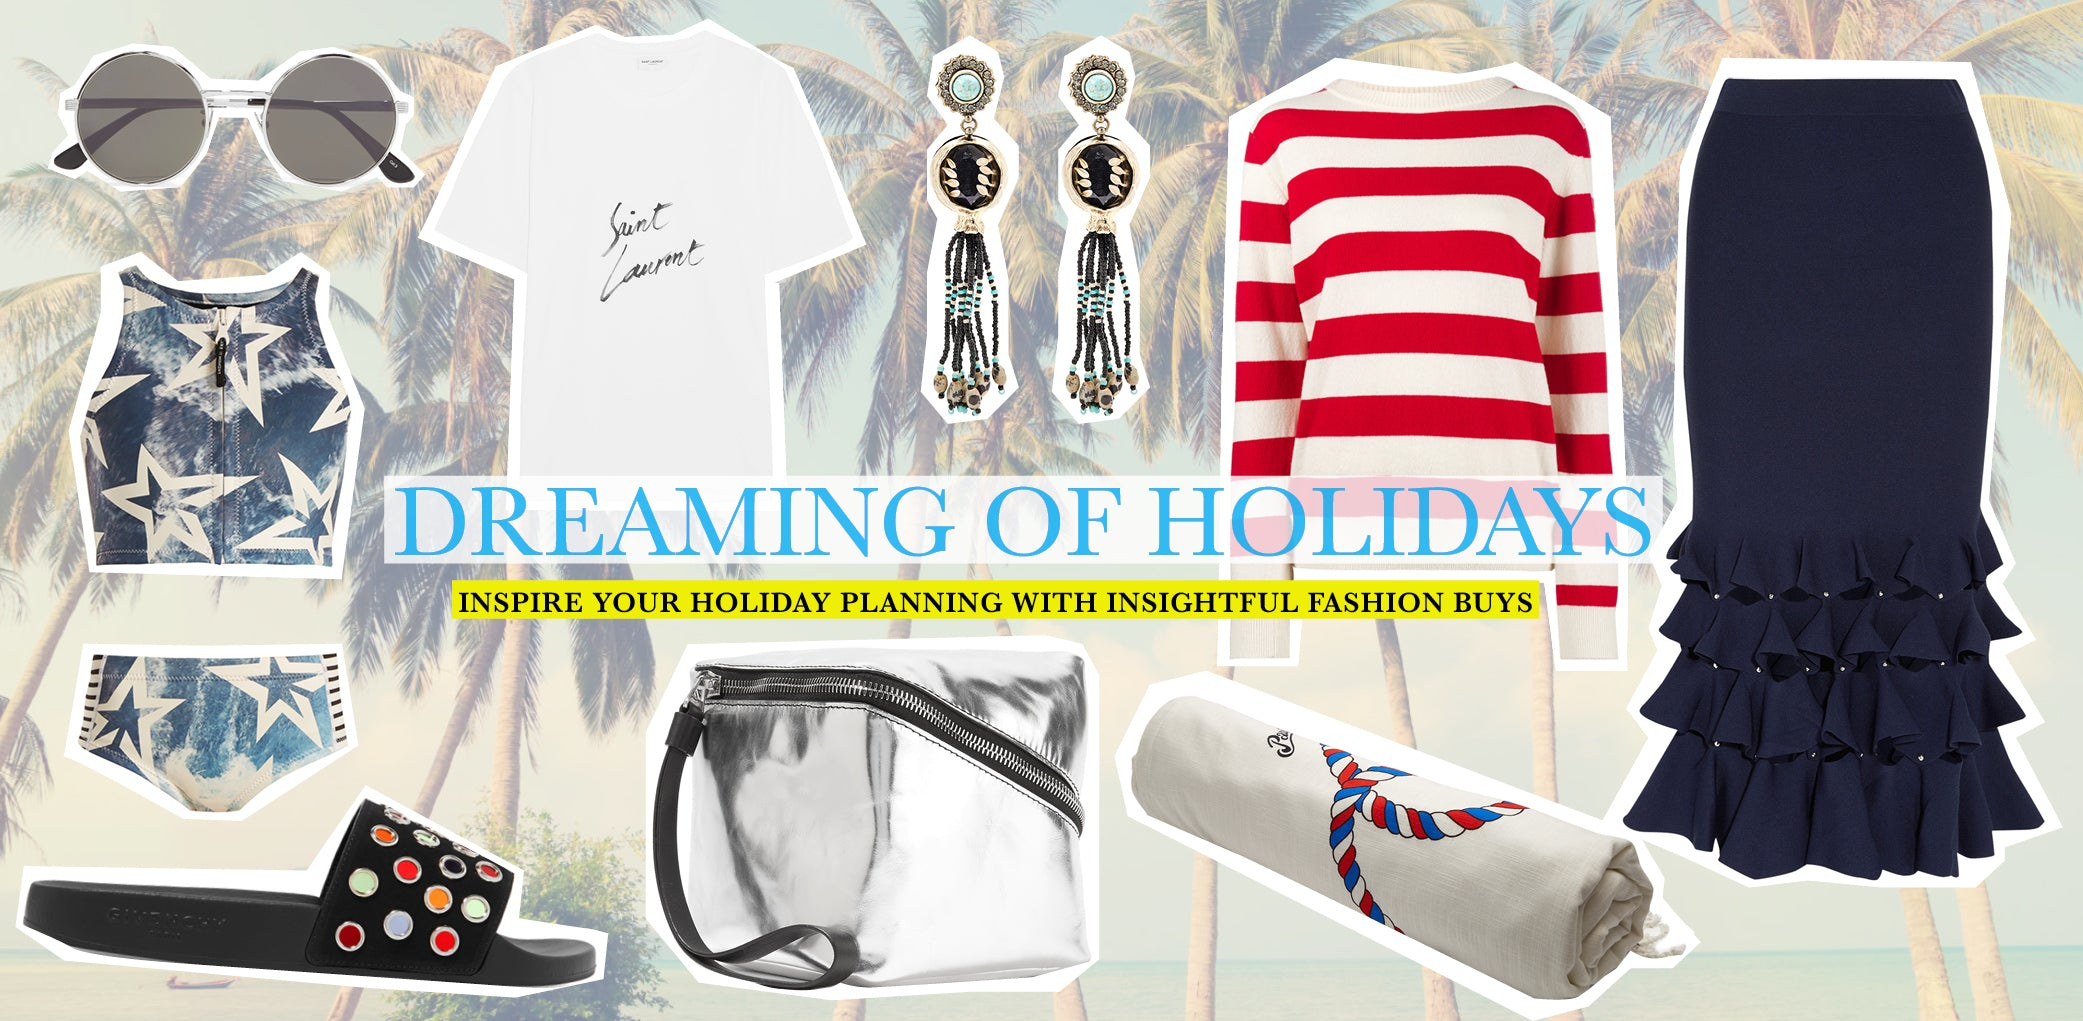 Fashion Style Trend: Holiday Dressing